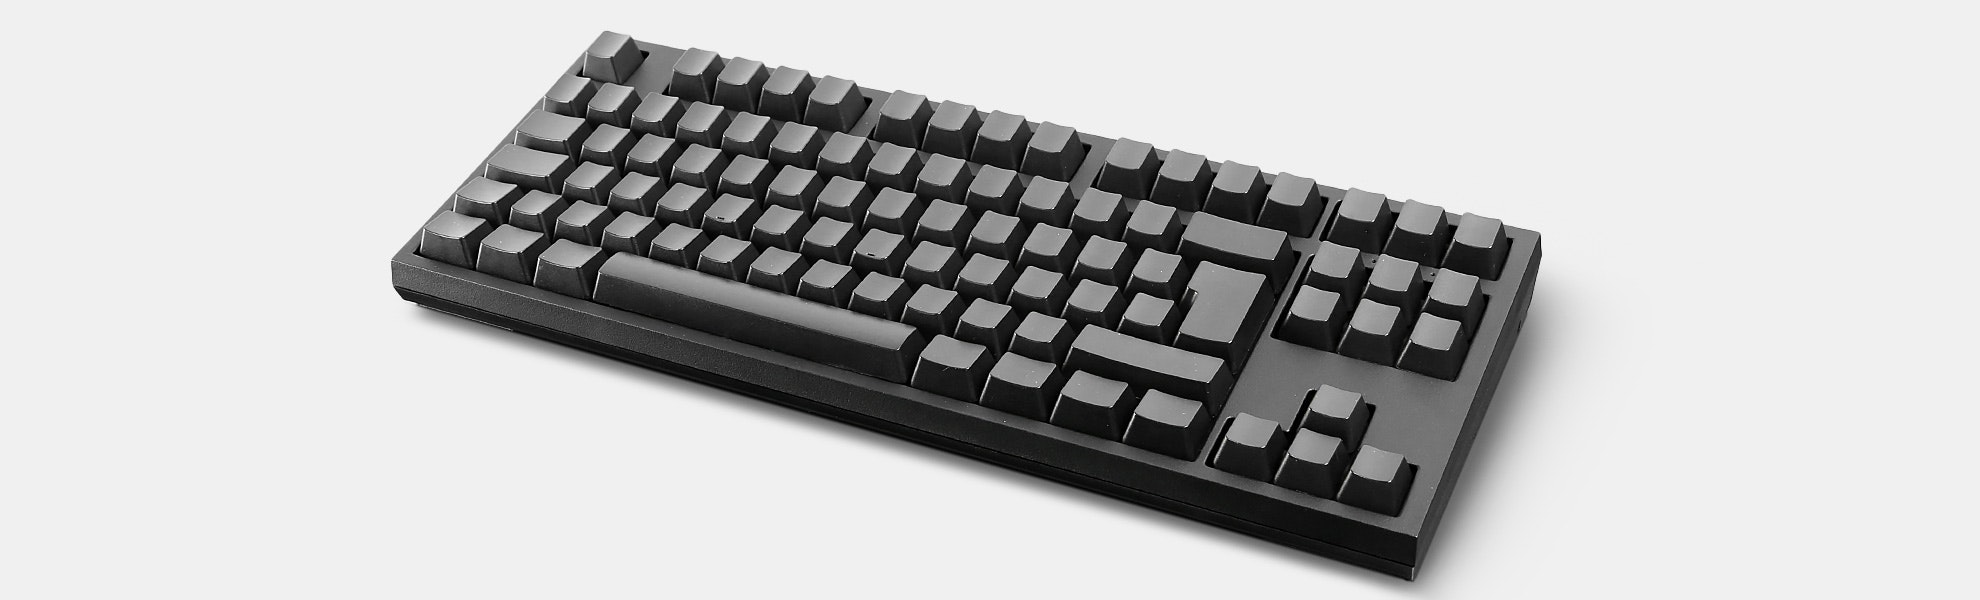 WASD V2 Mechanical Keyboard (ANSI/ISO)